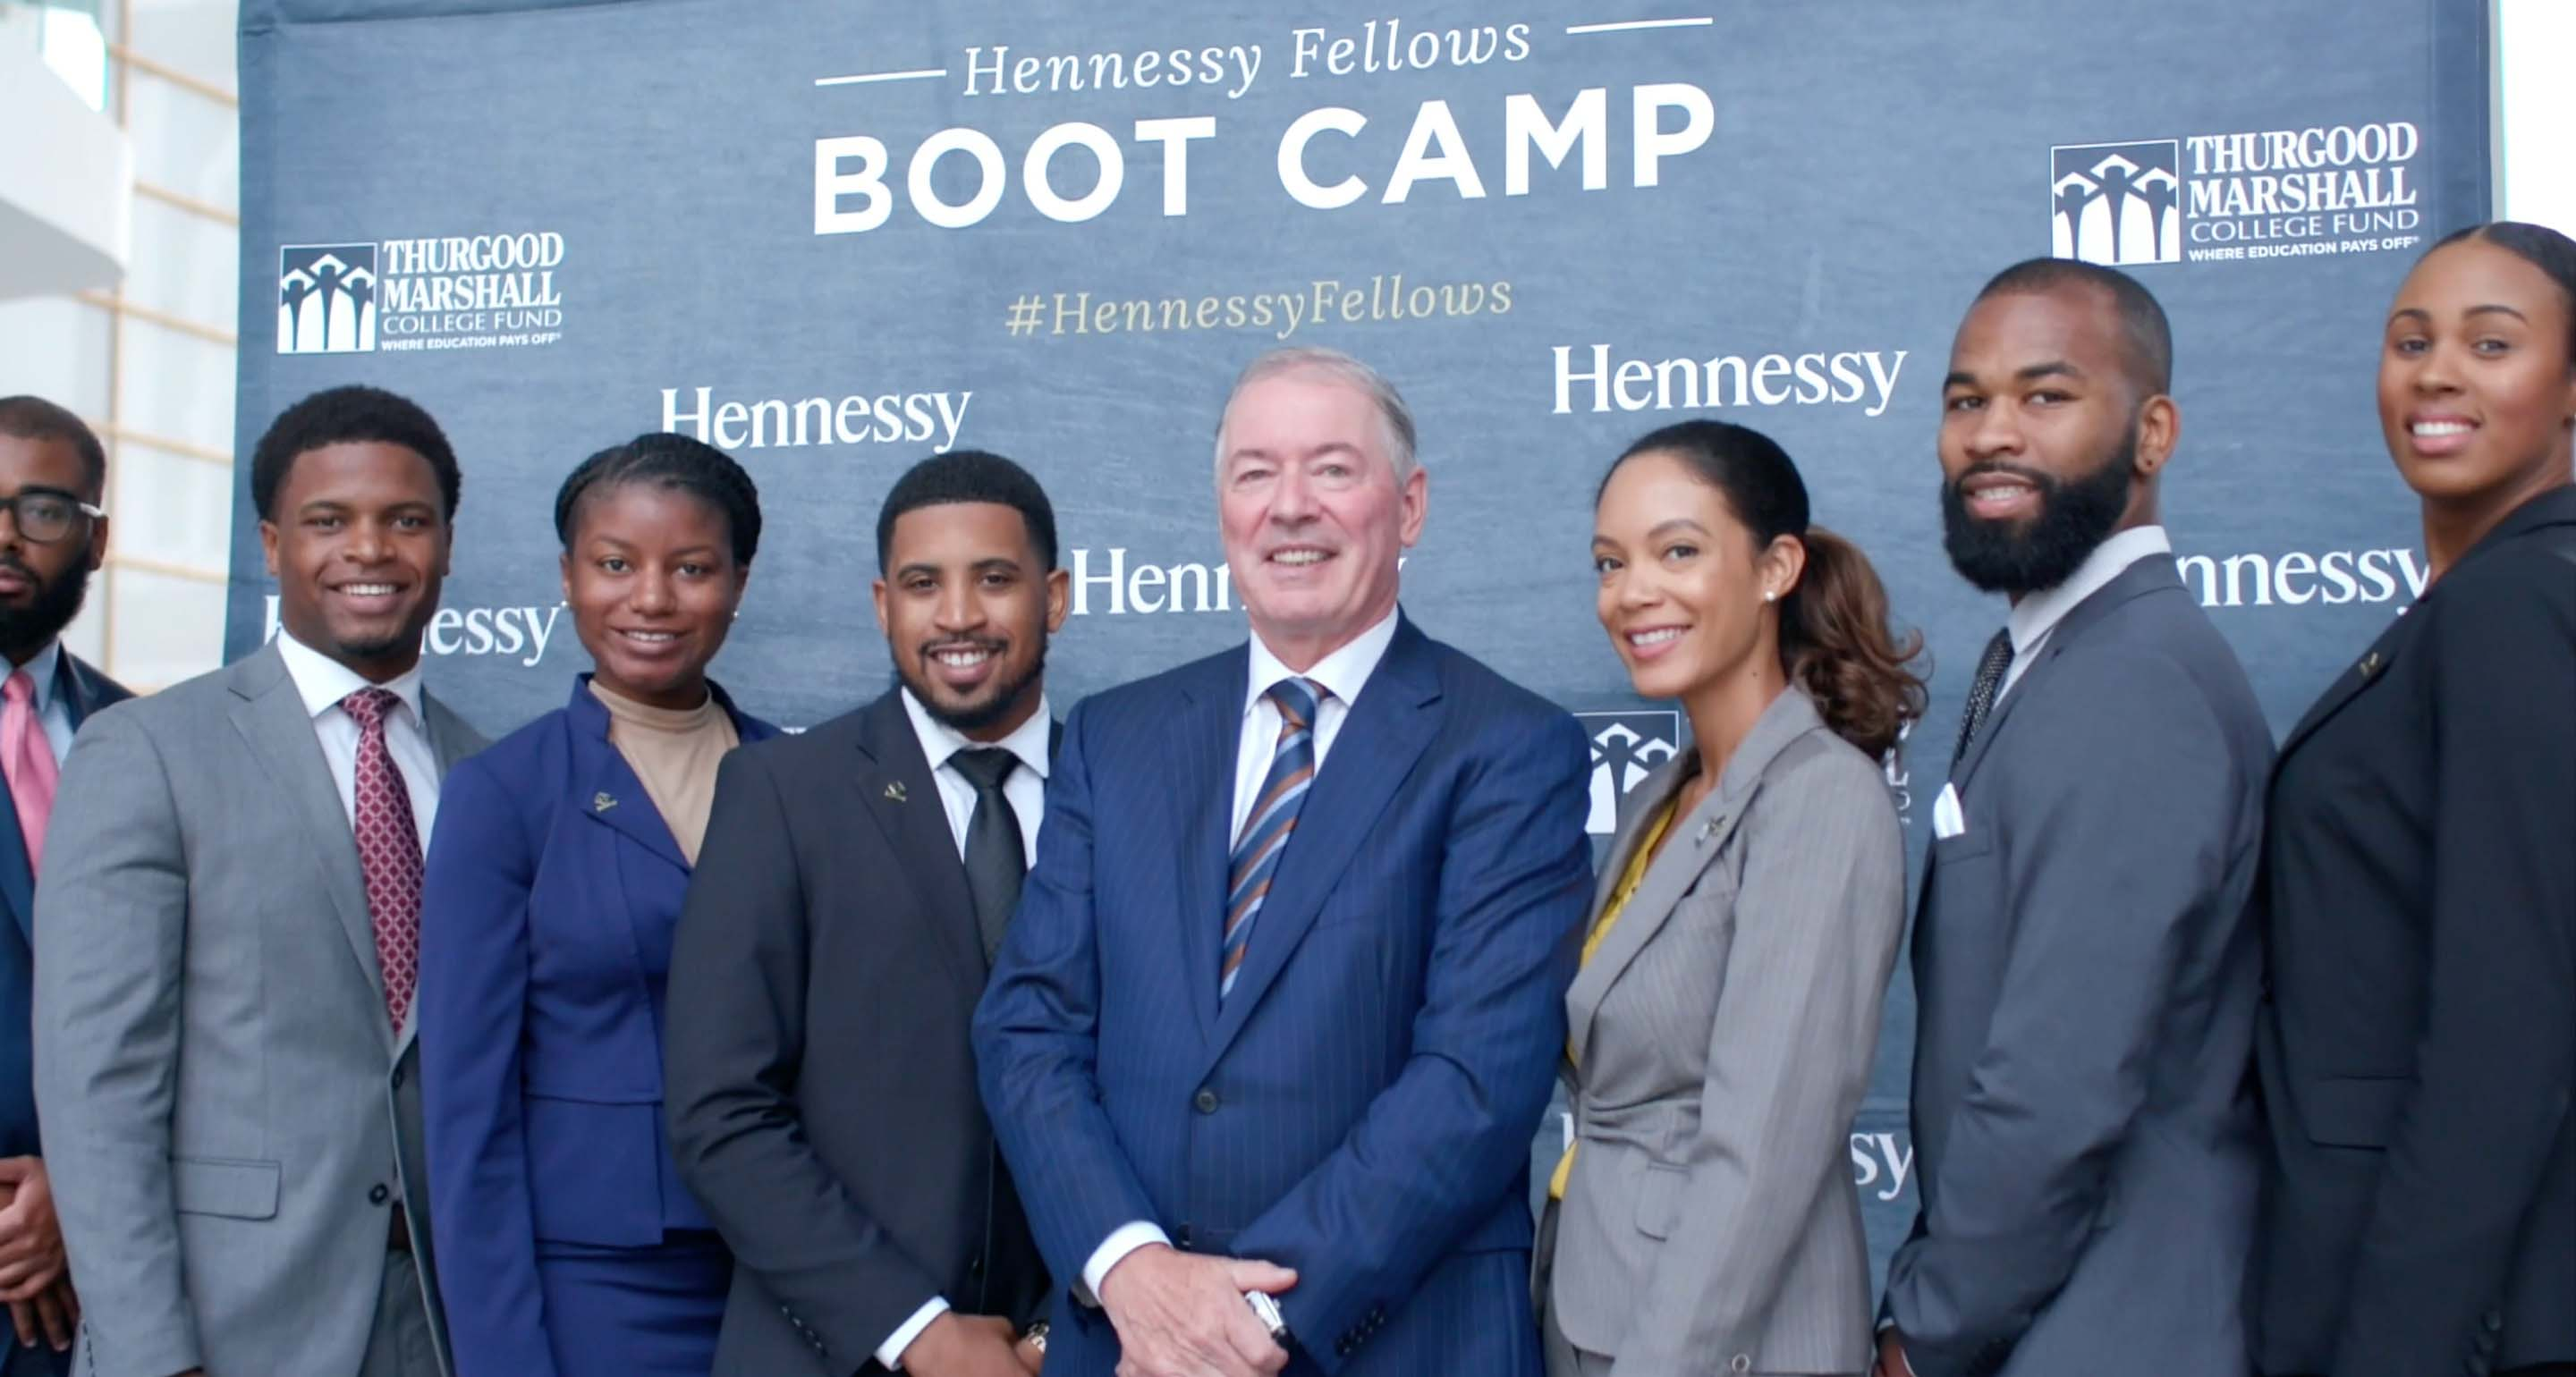 Hennessy has partnered with the Thurgood Marshall College Fund to create The Hennessy Fellows Program - video narrated by Nas.